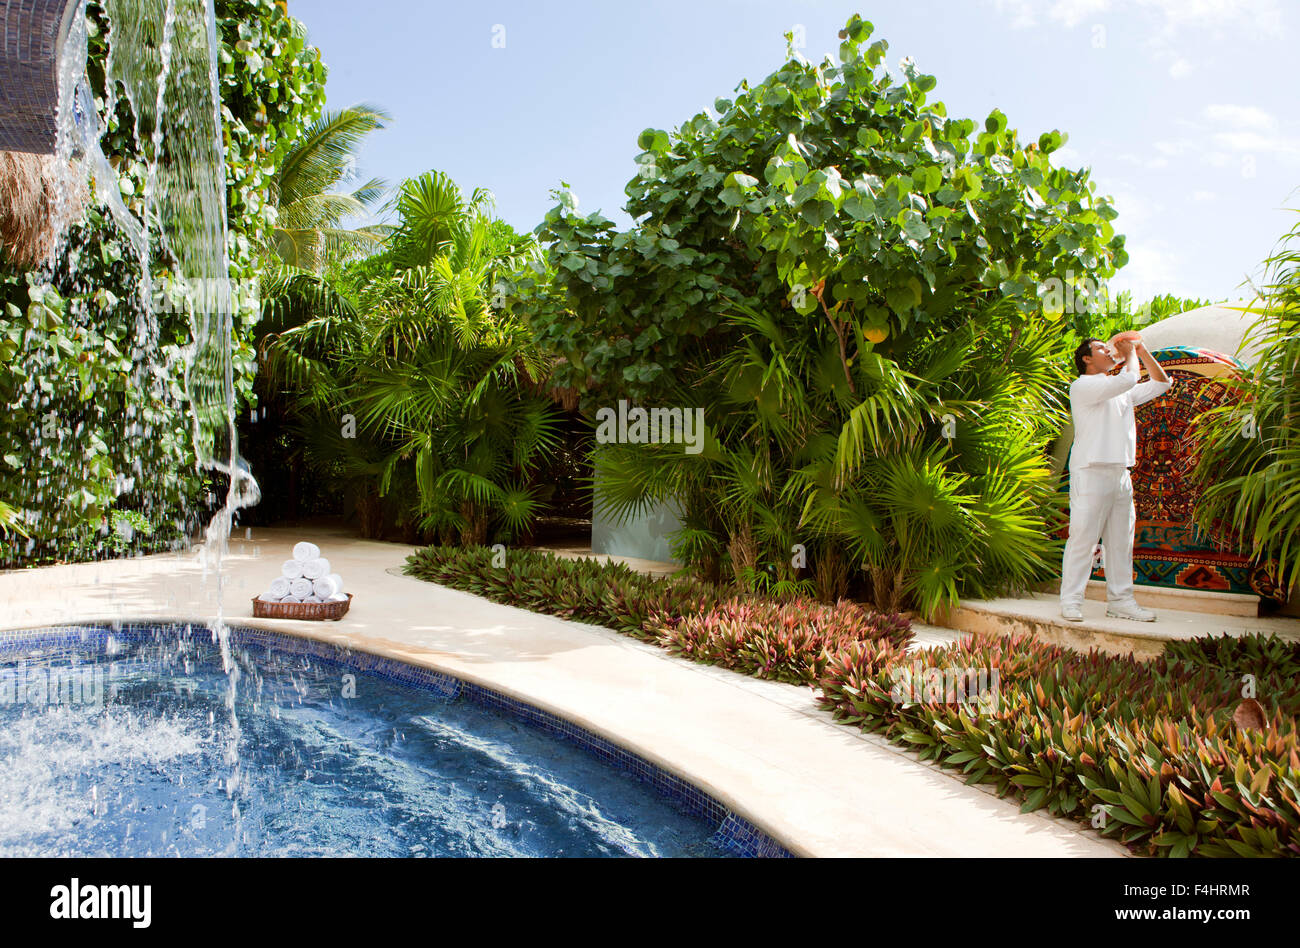 A young Mexican man blows a conch shell to signal the start of the Temazcal treatment at Spa Aqua at Live Aqua Resort - Stock Image